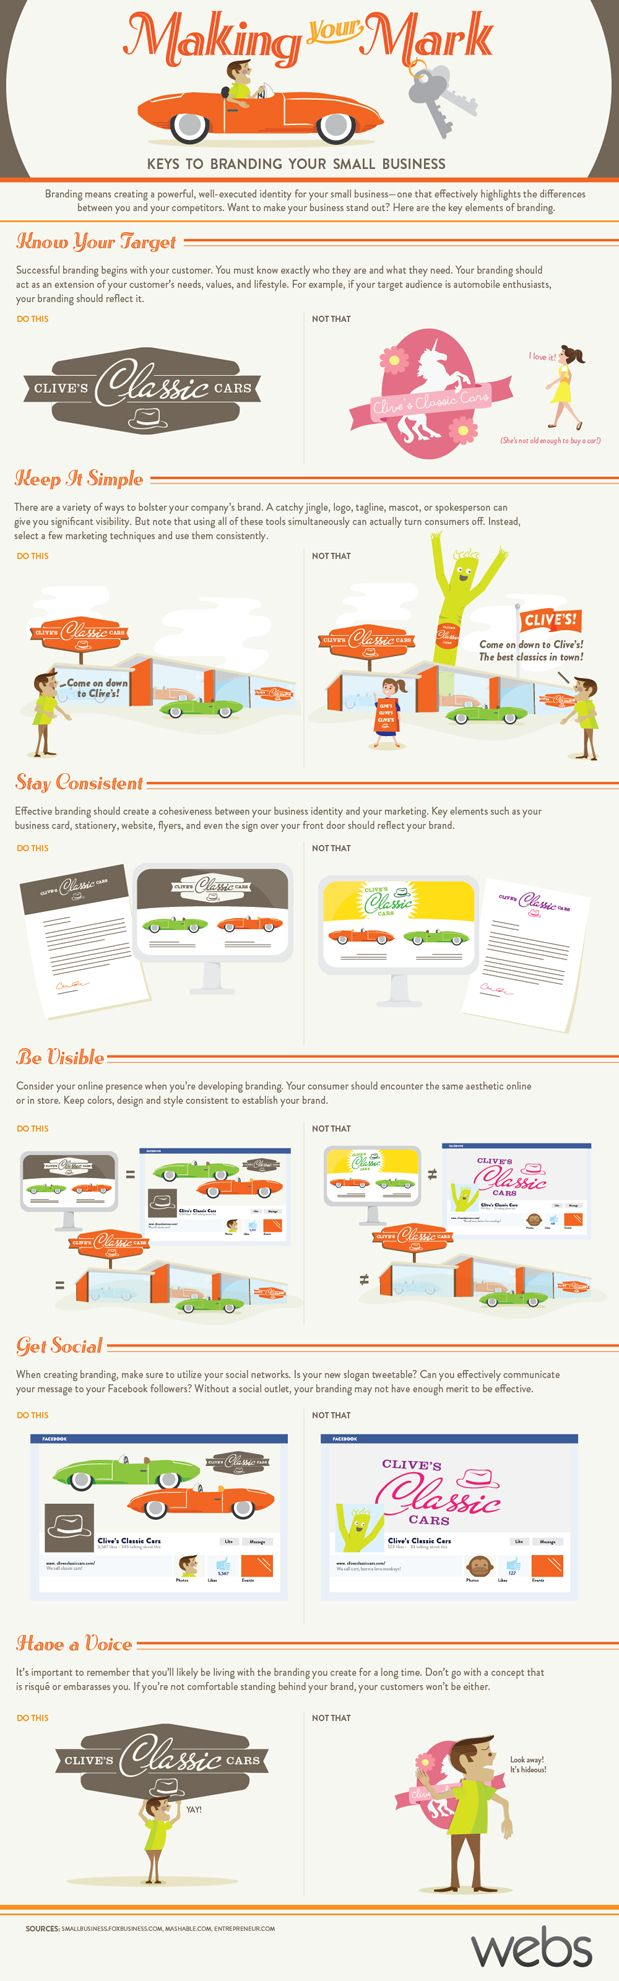 Infographic - Keys To Branding Your Small Business.  For a business looking to be relevant longer than a year, branding is the one of the key investments you can make towards your business. There are some great methodical steps to take note of when considering your brand's presence and interpretation by the general public.